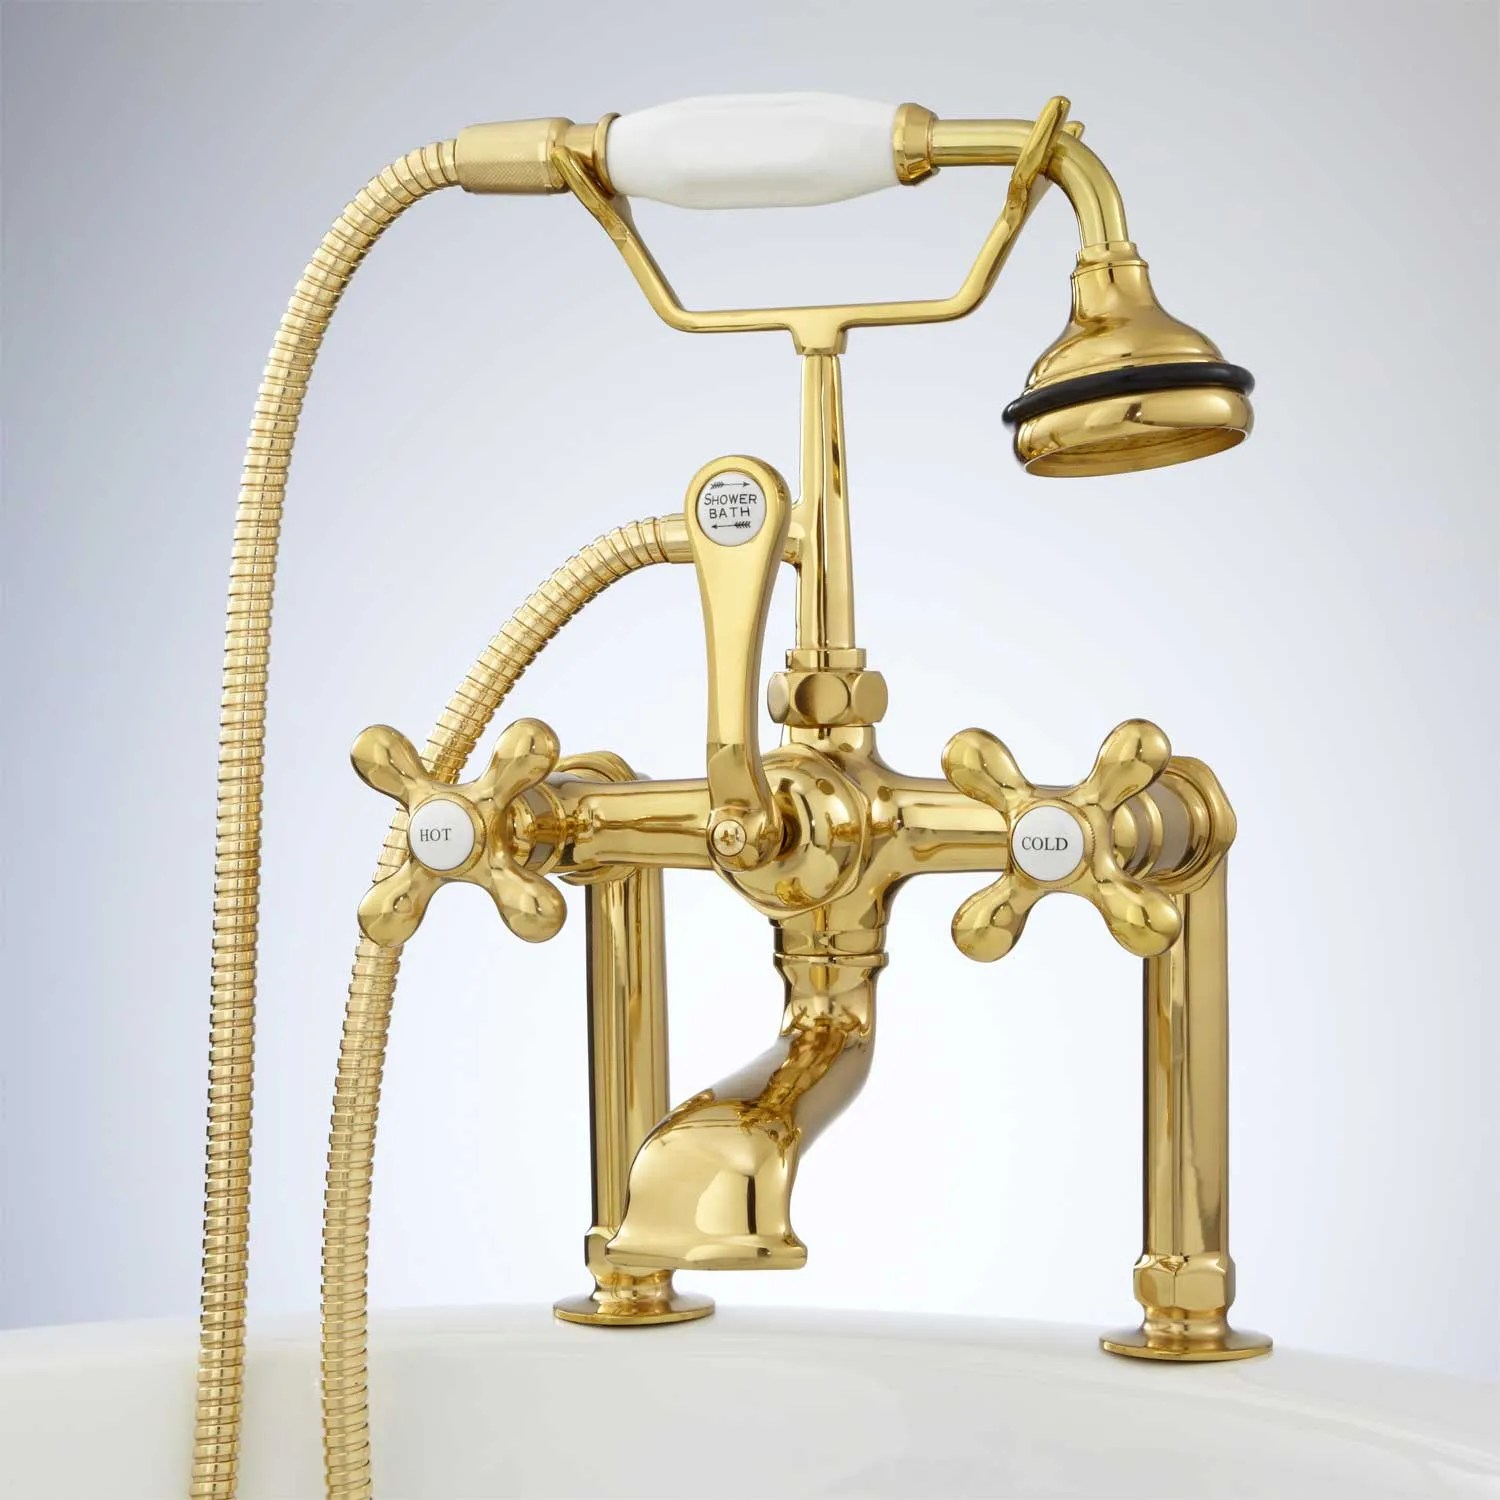 Tub Faucet Buying Guide